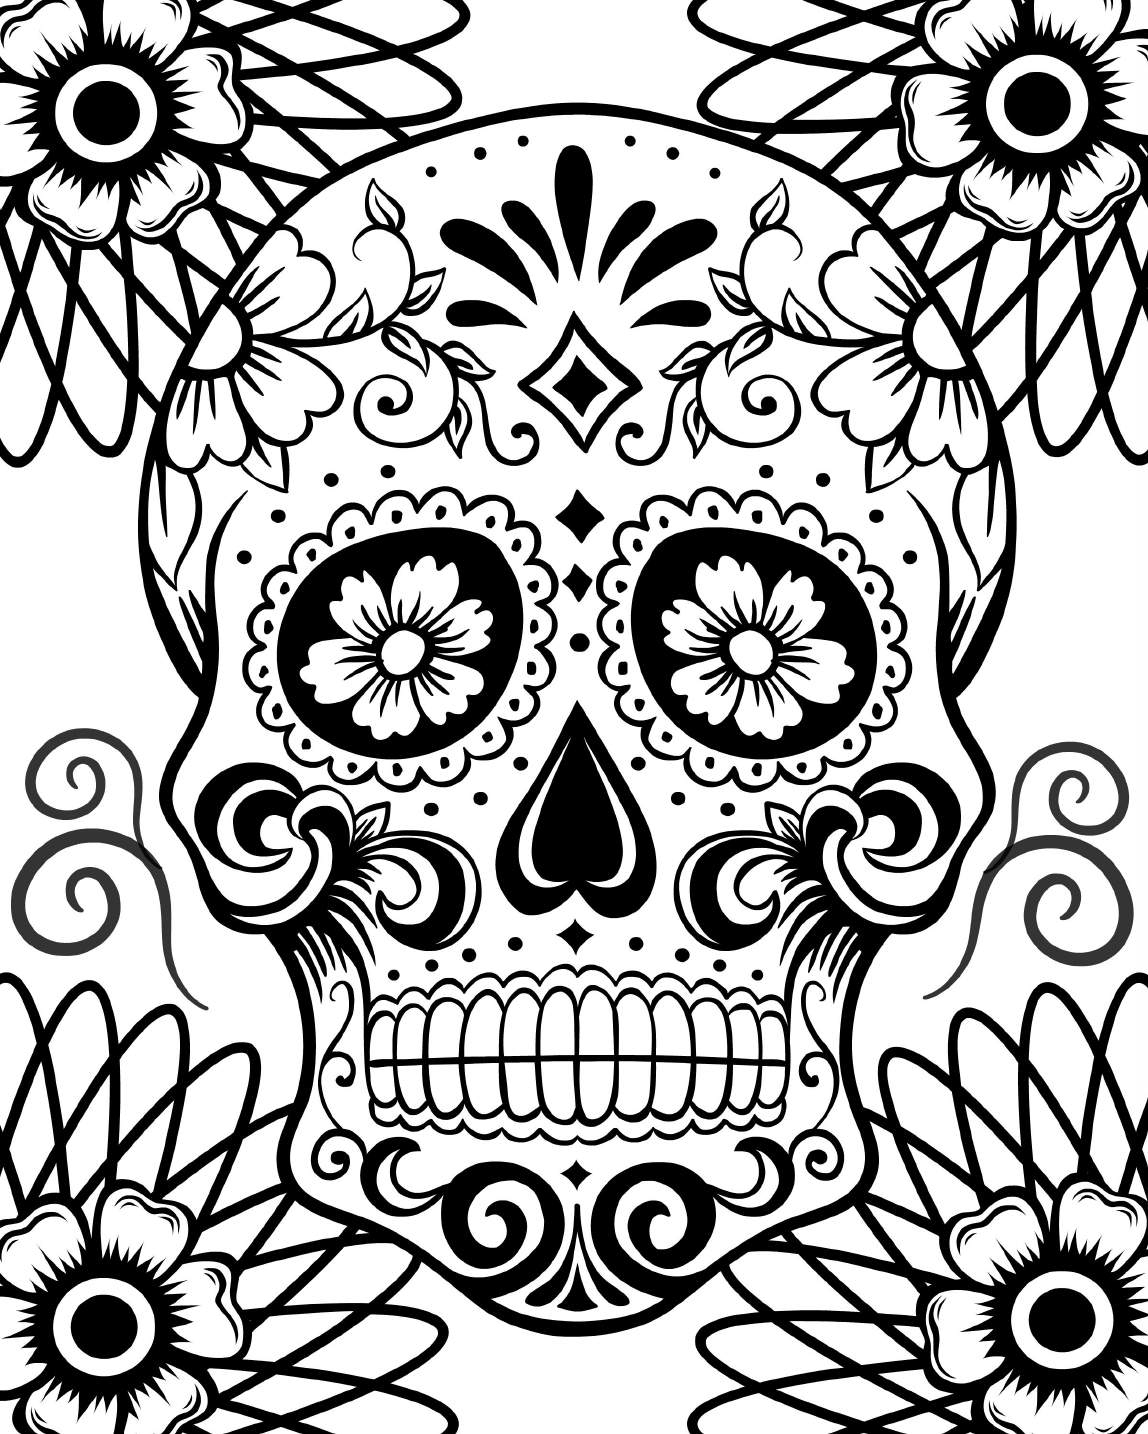 day of the dead skulls coloring pages day of the dead history and free sugar skulls coloring pages coloring dead day pages skulls of the